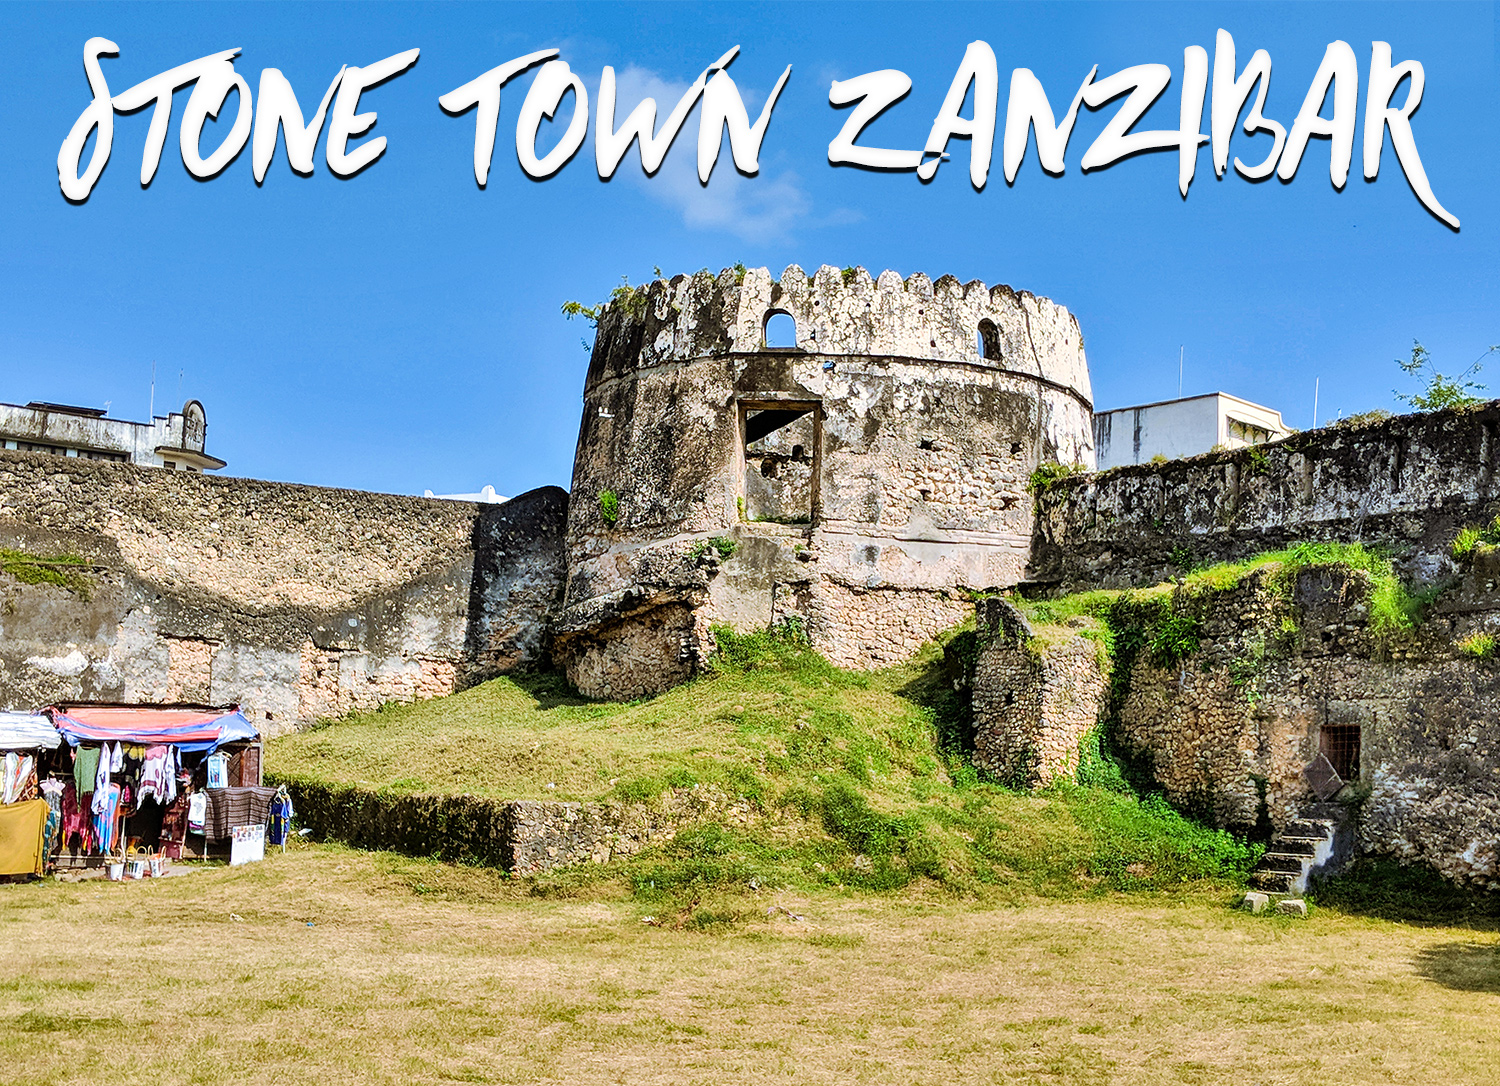 The Magic Of Stone Town Zanzibar Growing Up Without Borders